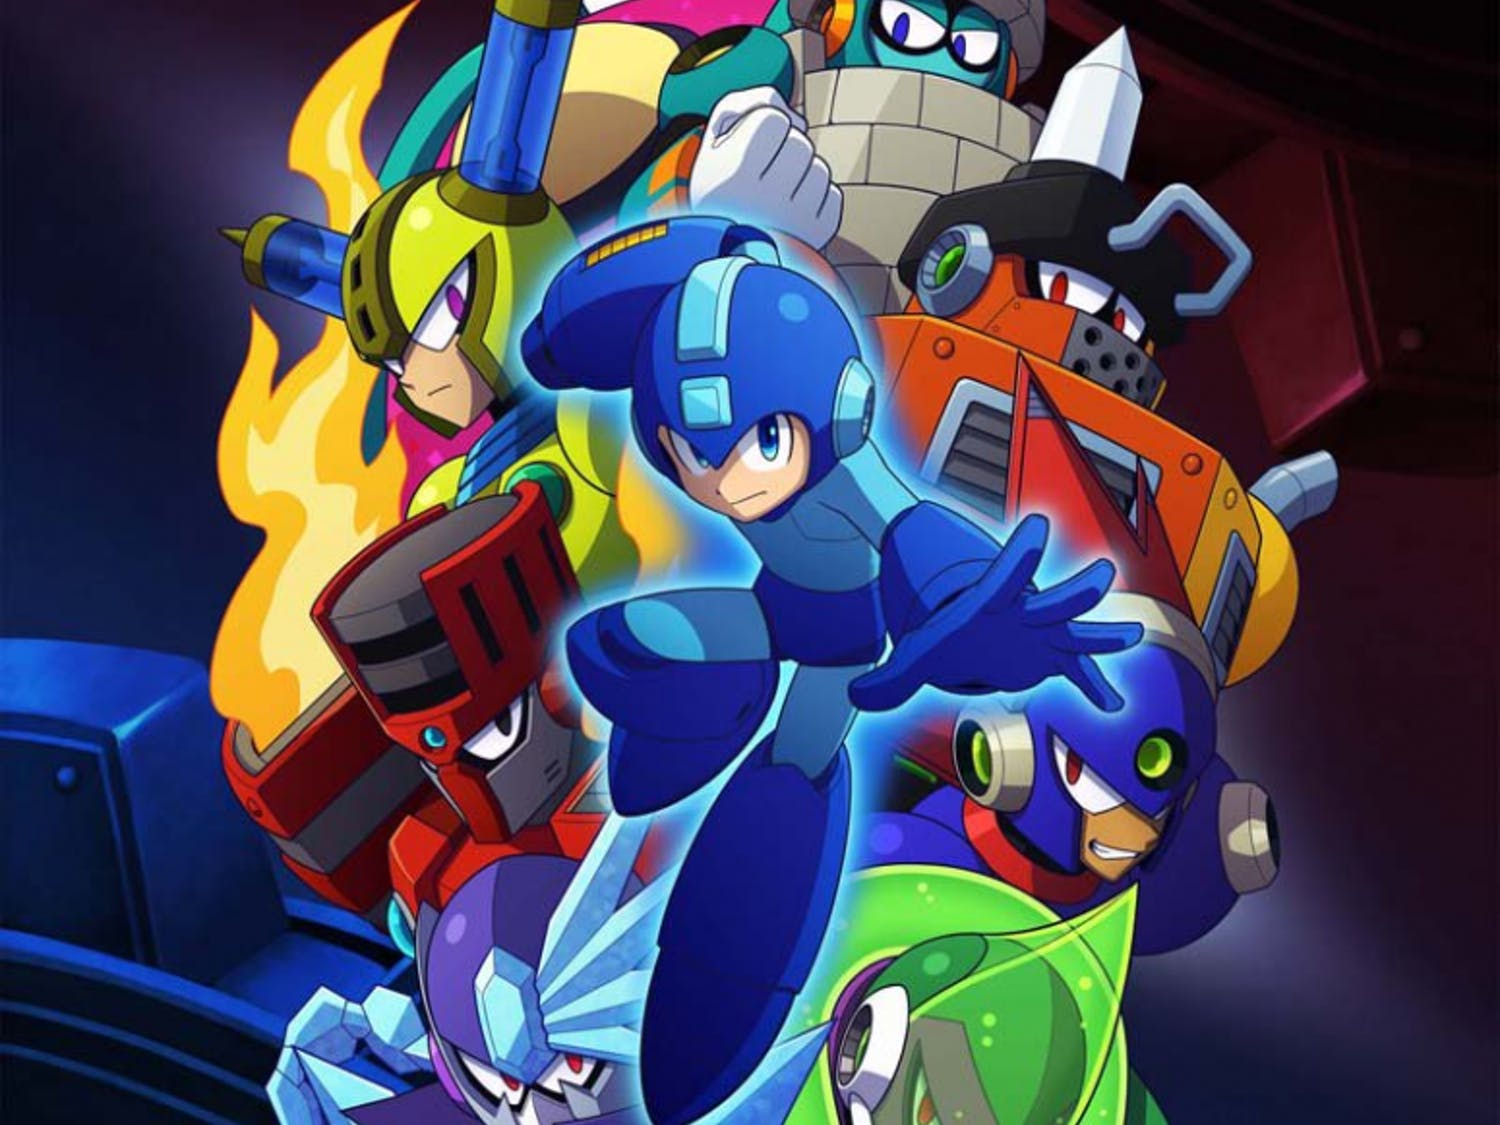 """Mega Man 11"" is out now for PC, PlayStation 4, Xbox One and Switch."